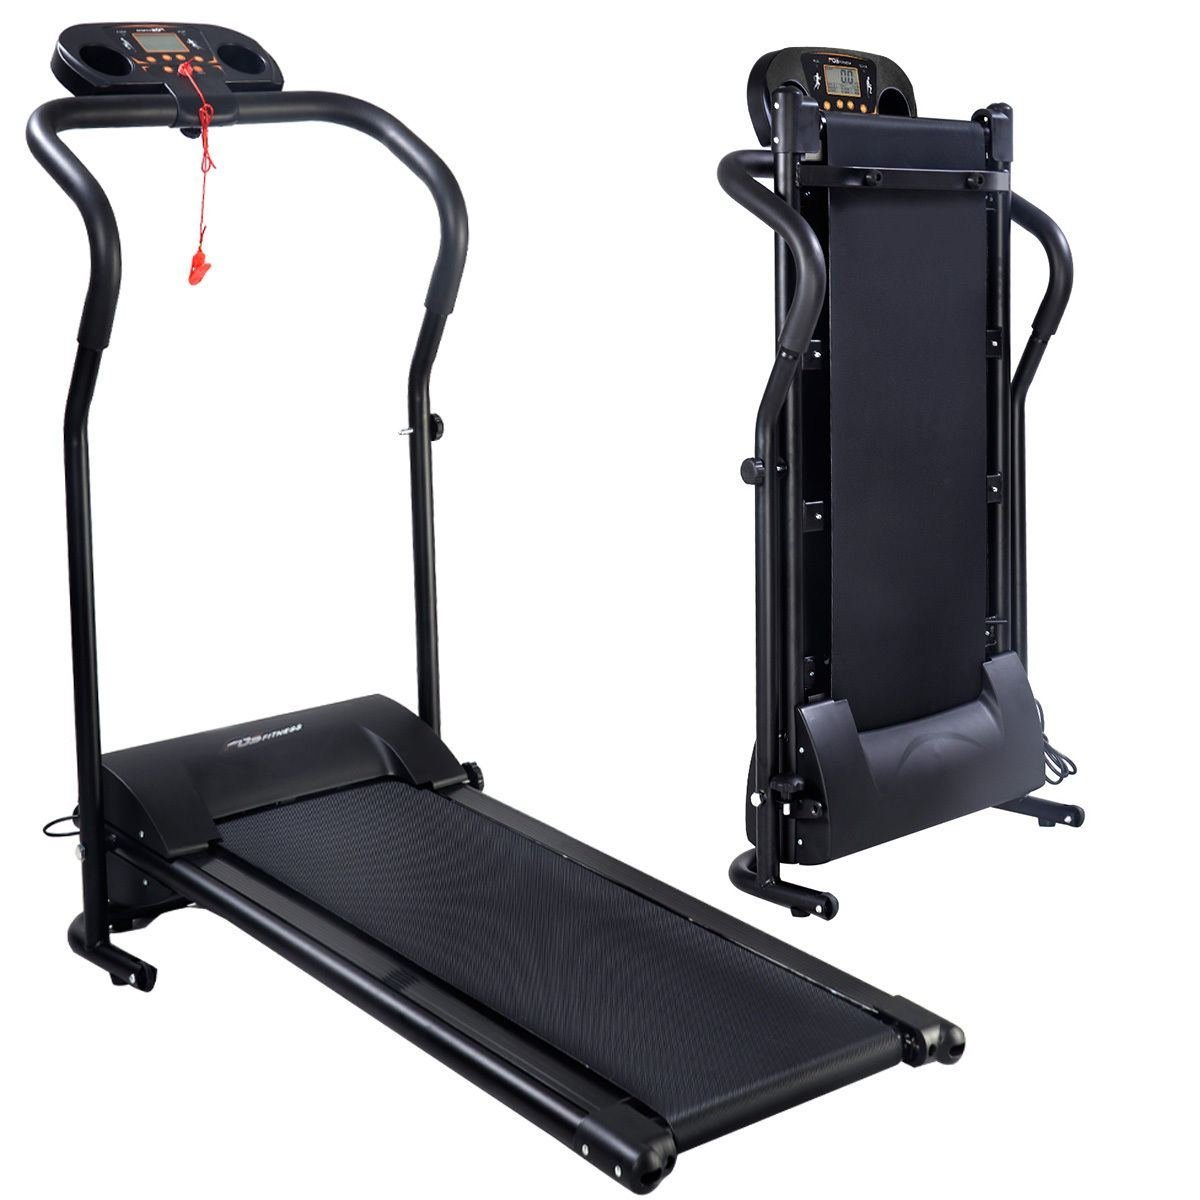 2. Power Motorized Jogging Machine